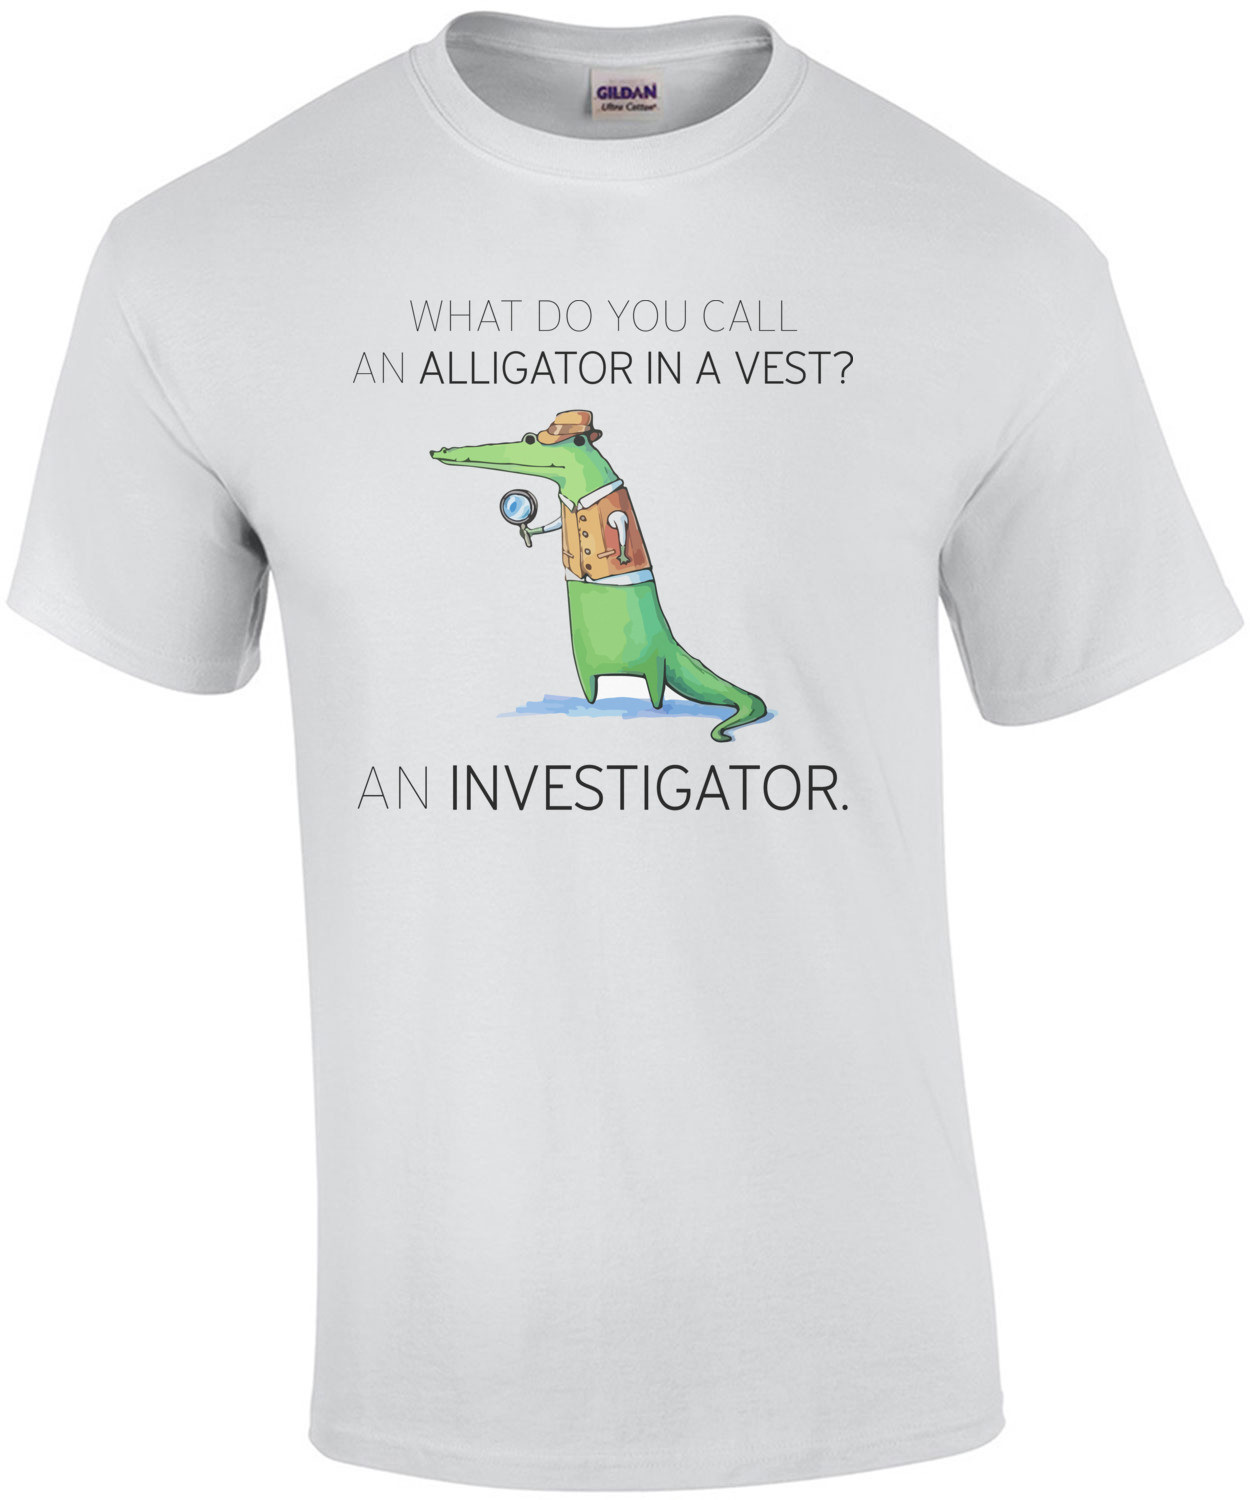 What do you call an alligator in a vest? An Investigator. Pun T-Shirt